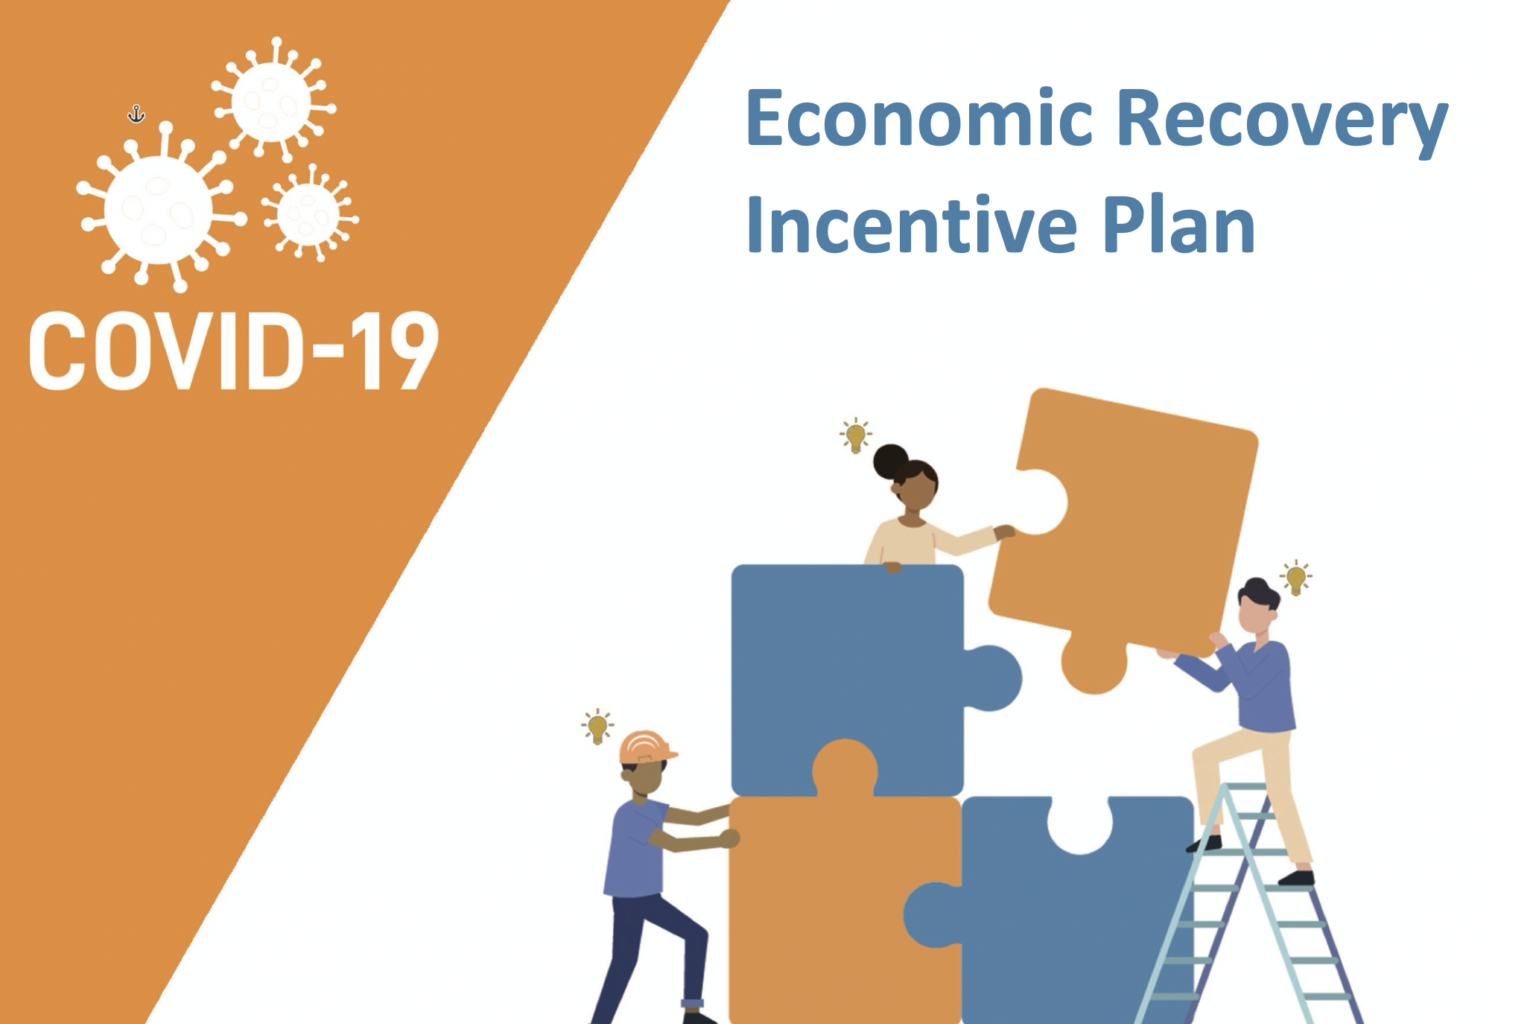 color graphic of people putting puzzle pieces together, with text COVID-19 Economic Recovery Incentive Plan